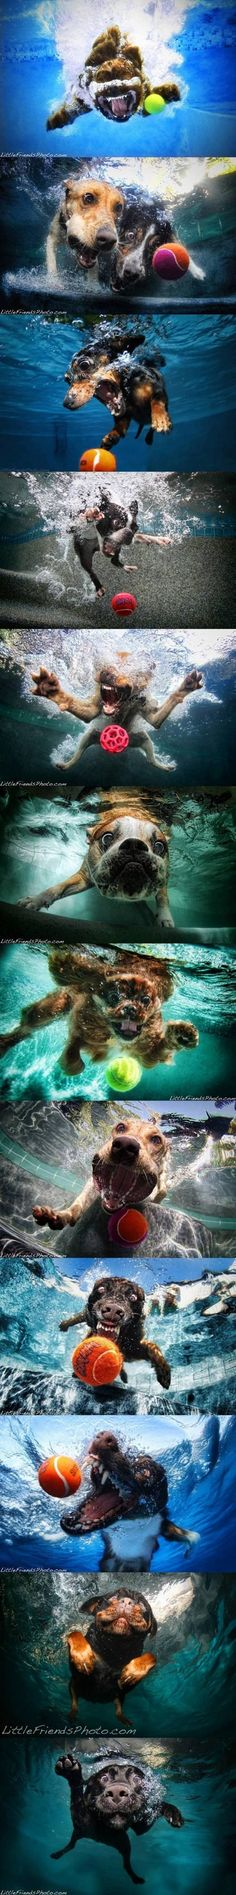 Dogs diving into a pool. I love the kill faces for the tennis ball.